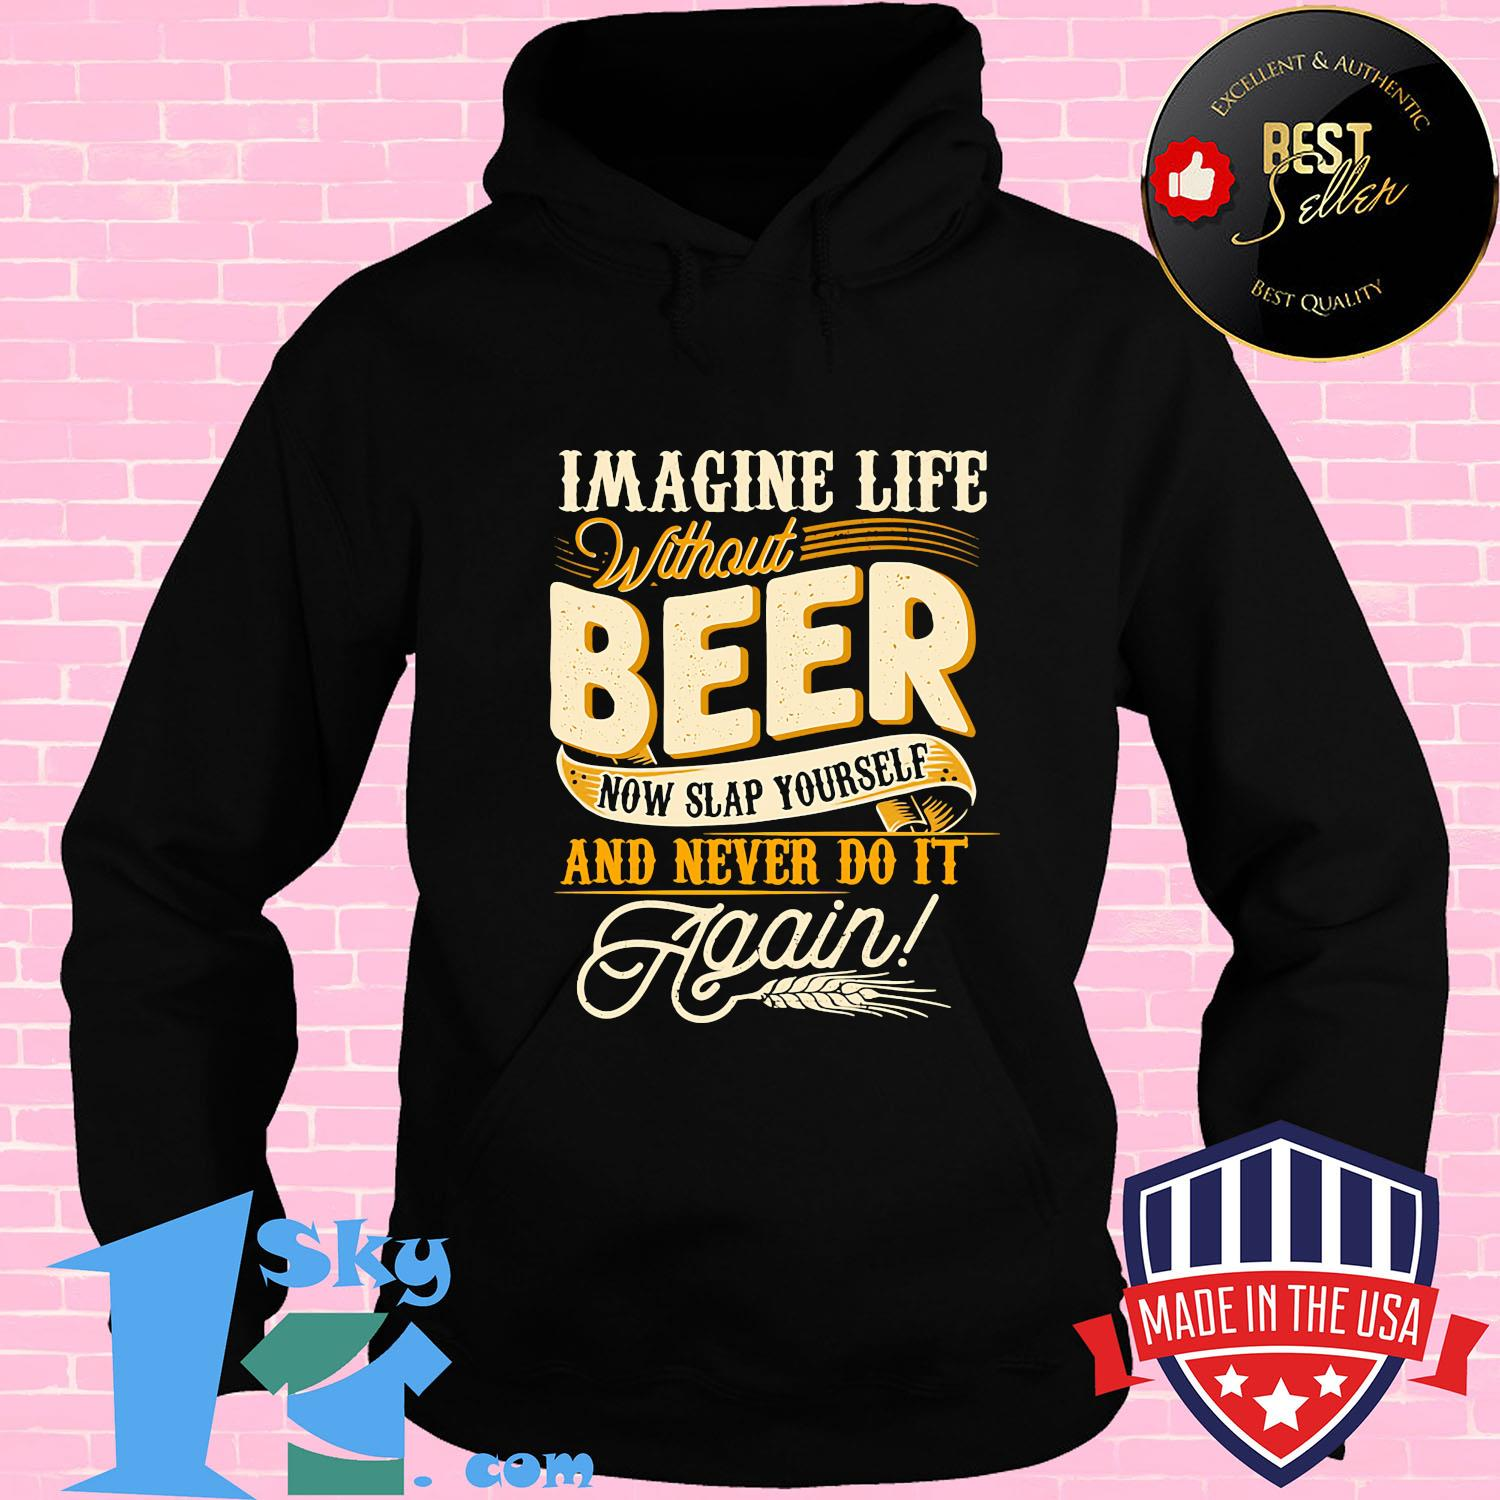 Imagine life without beer now slap yourself and never do it again shirt